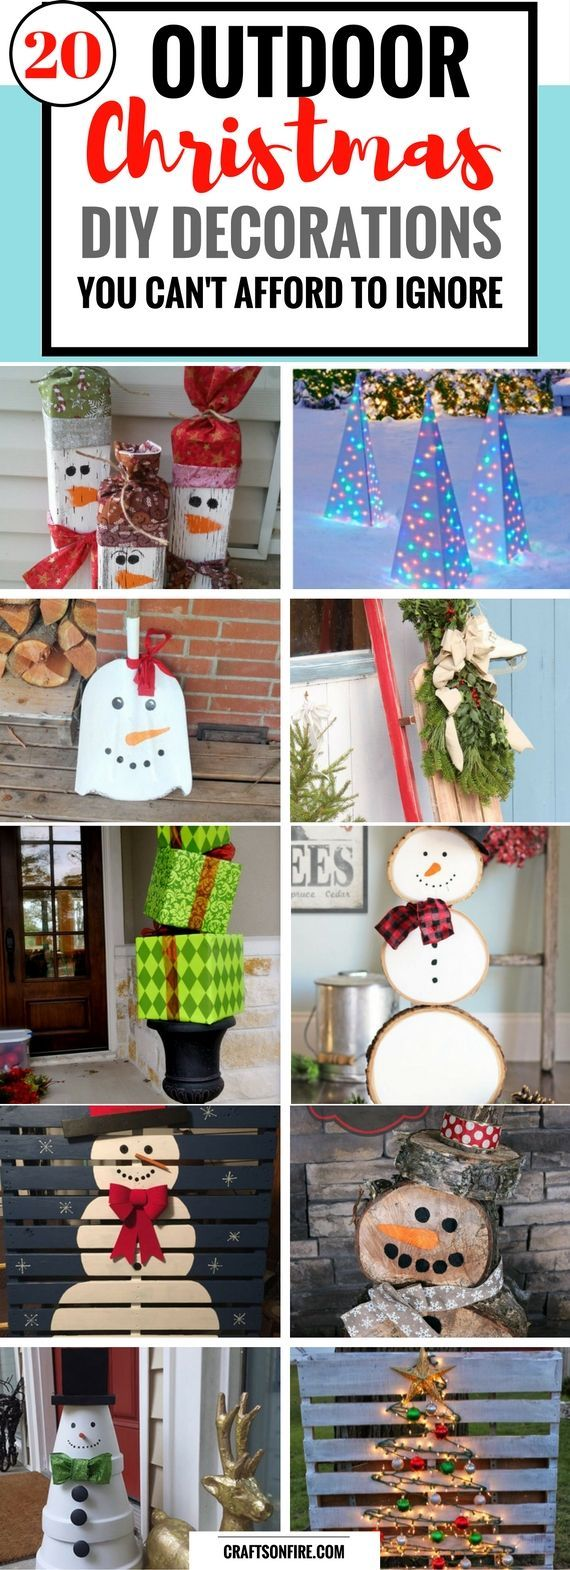 Outdoor Christmas Decor Ideas that will make your home look the BEST! Try making these fantastic and easy decorations that won't break the bank. You're going to LOVE this list of 20 diy projects.